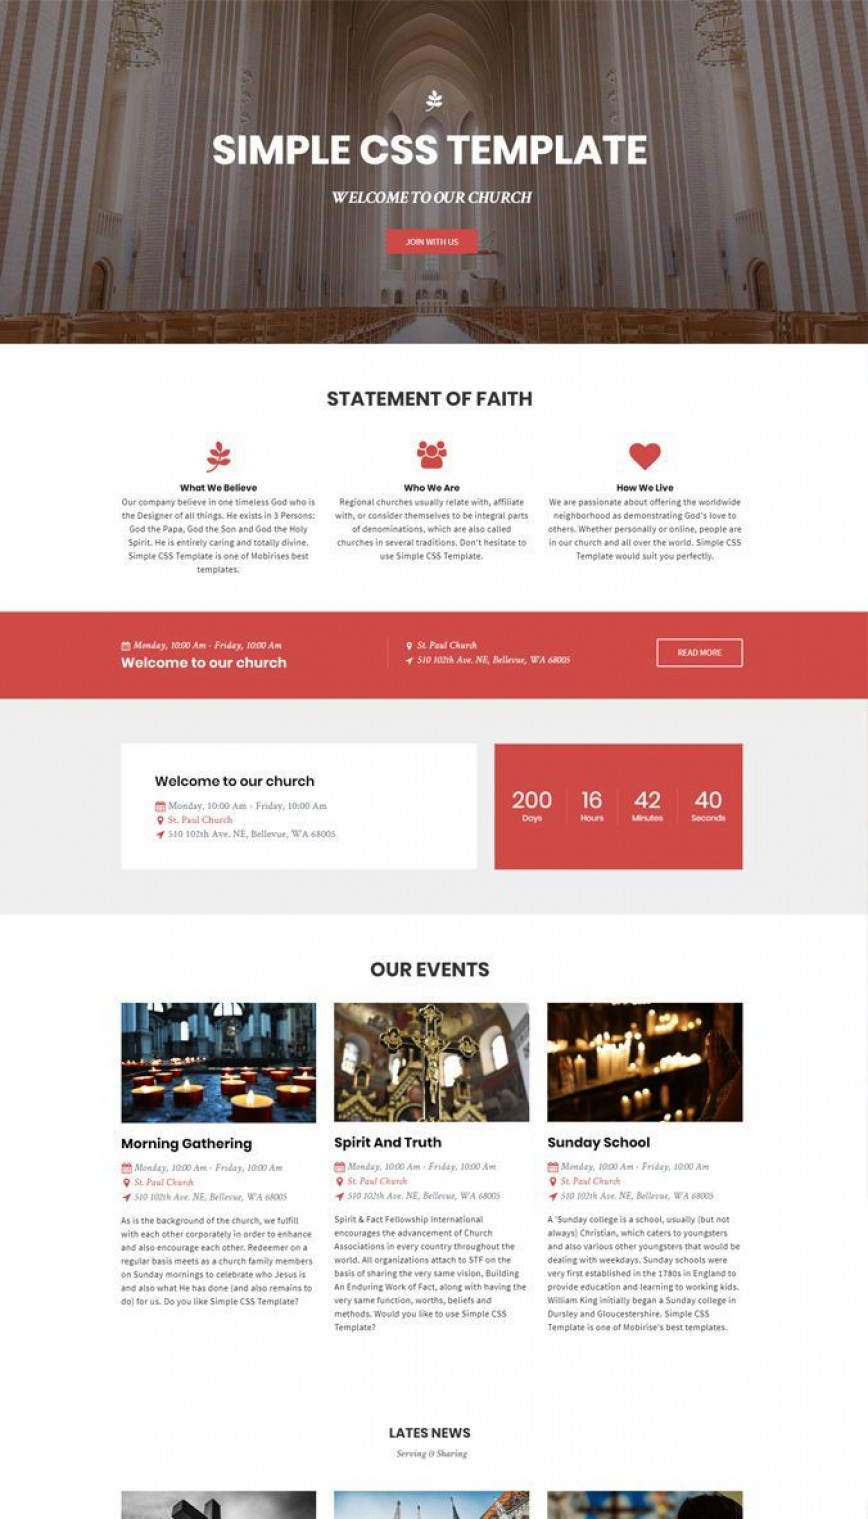 002 Incredible Free Simple Web Page Template Example  Website Download Html Without Cs One